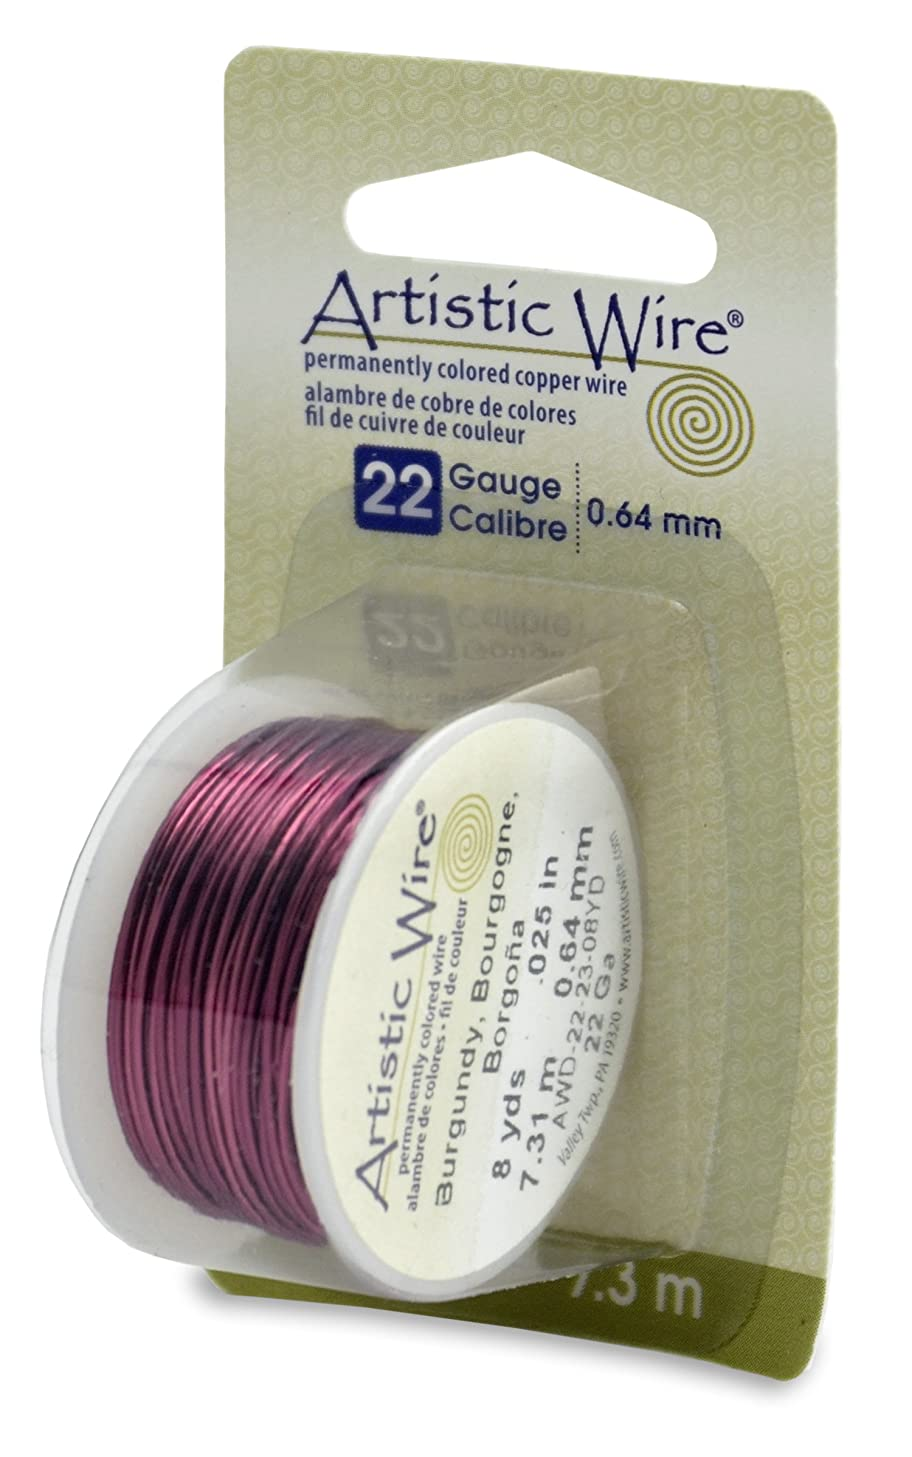 Artistic Wire Beadalon, 22 Gauge, Burgundy Color, 8 yd (7.3 m) Craft Wire,